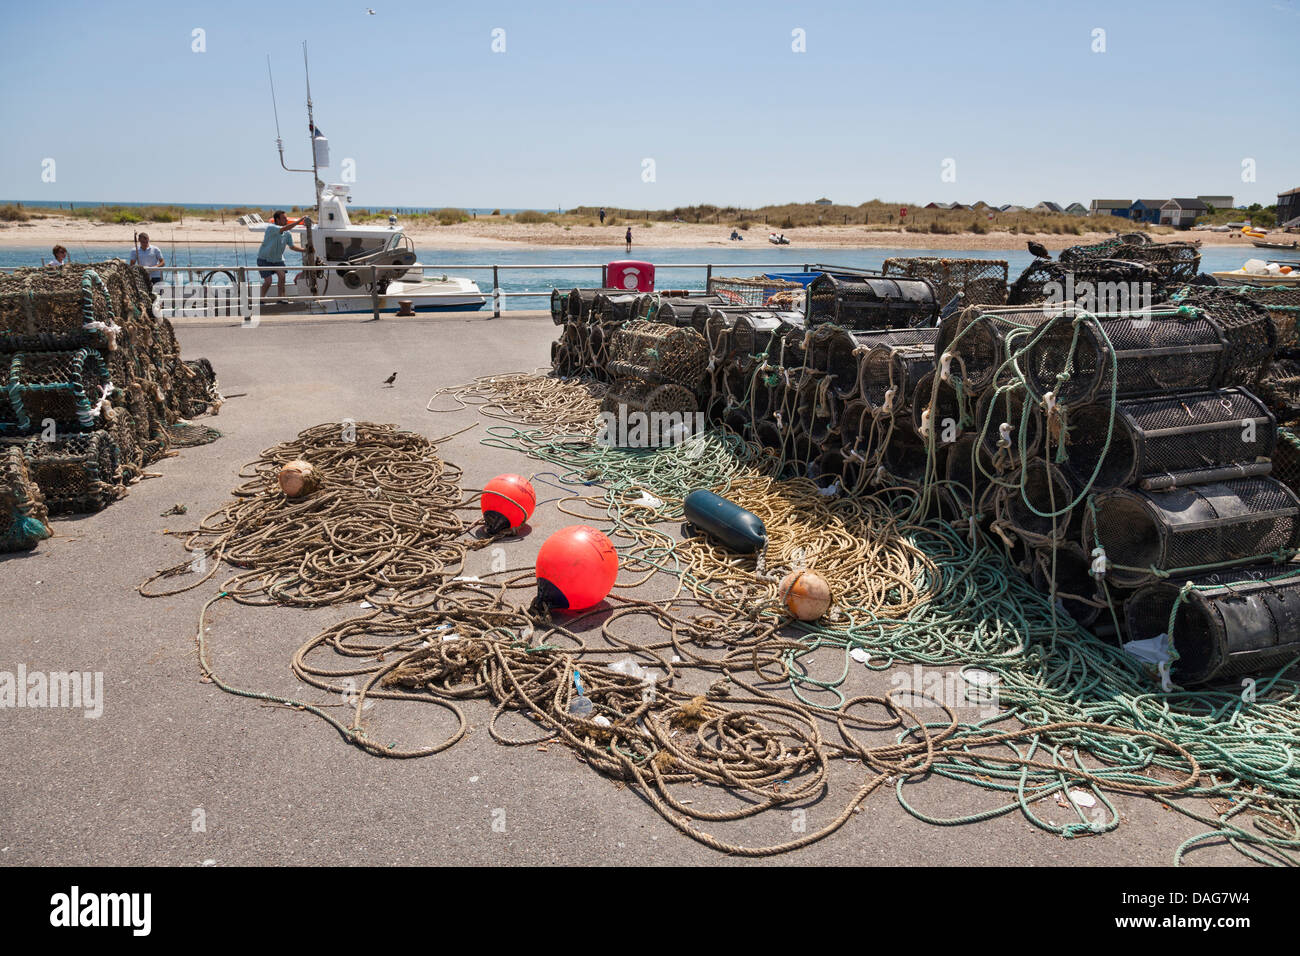 crab and lobster pots and ropes drying in the sun on the quayside - Stock Image